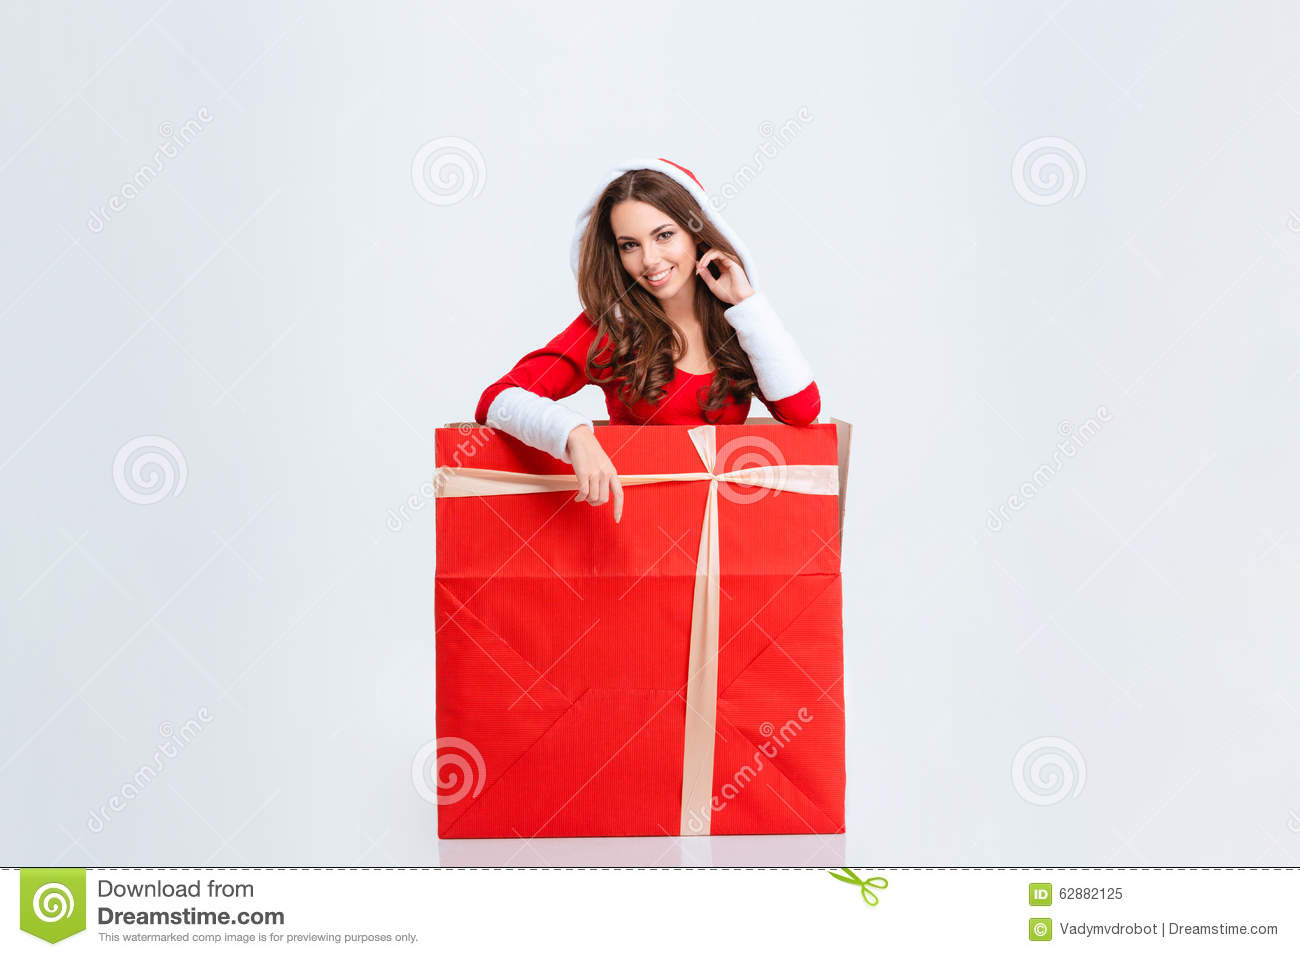 charming-girl-santa-claus-costume-sitting-inside-gift-box-lovely-playful-red-hood-posing-isolated-over-white-background-62882125.jpg